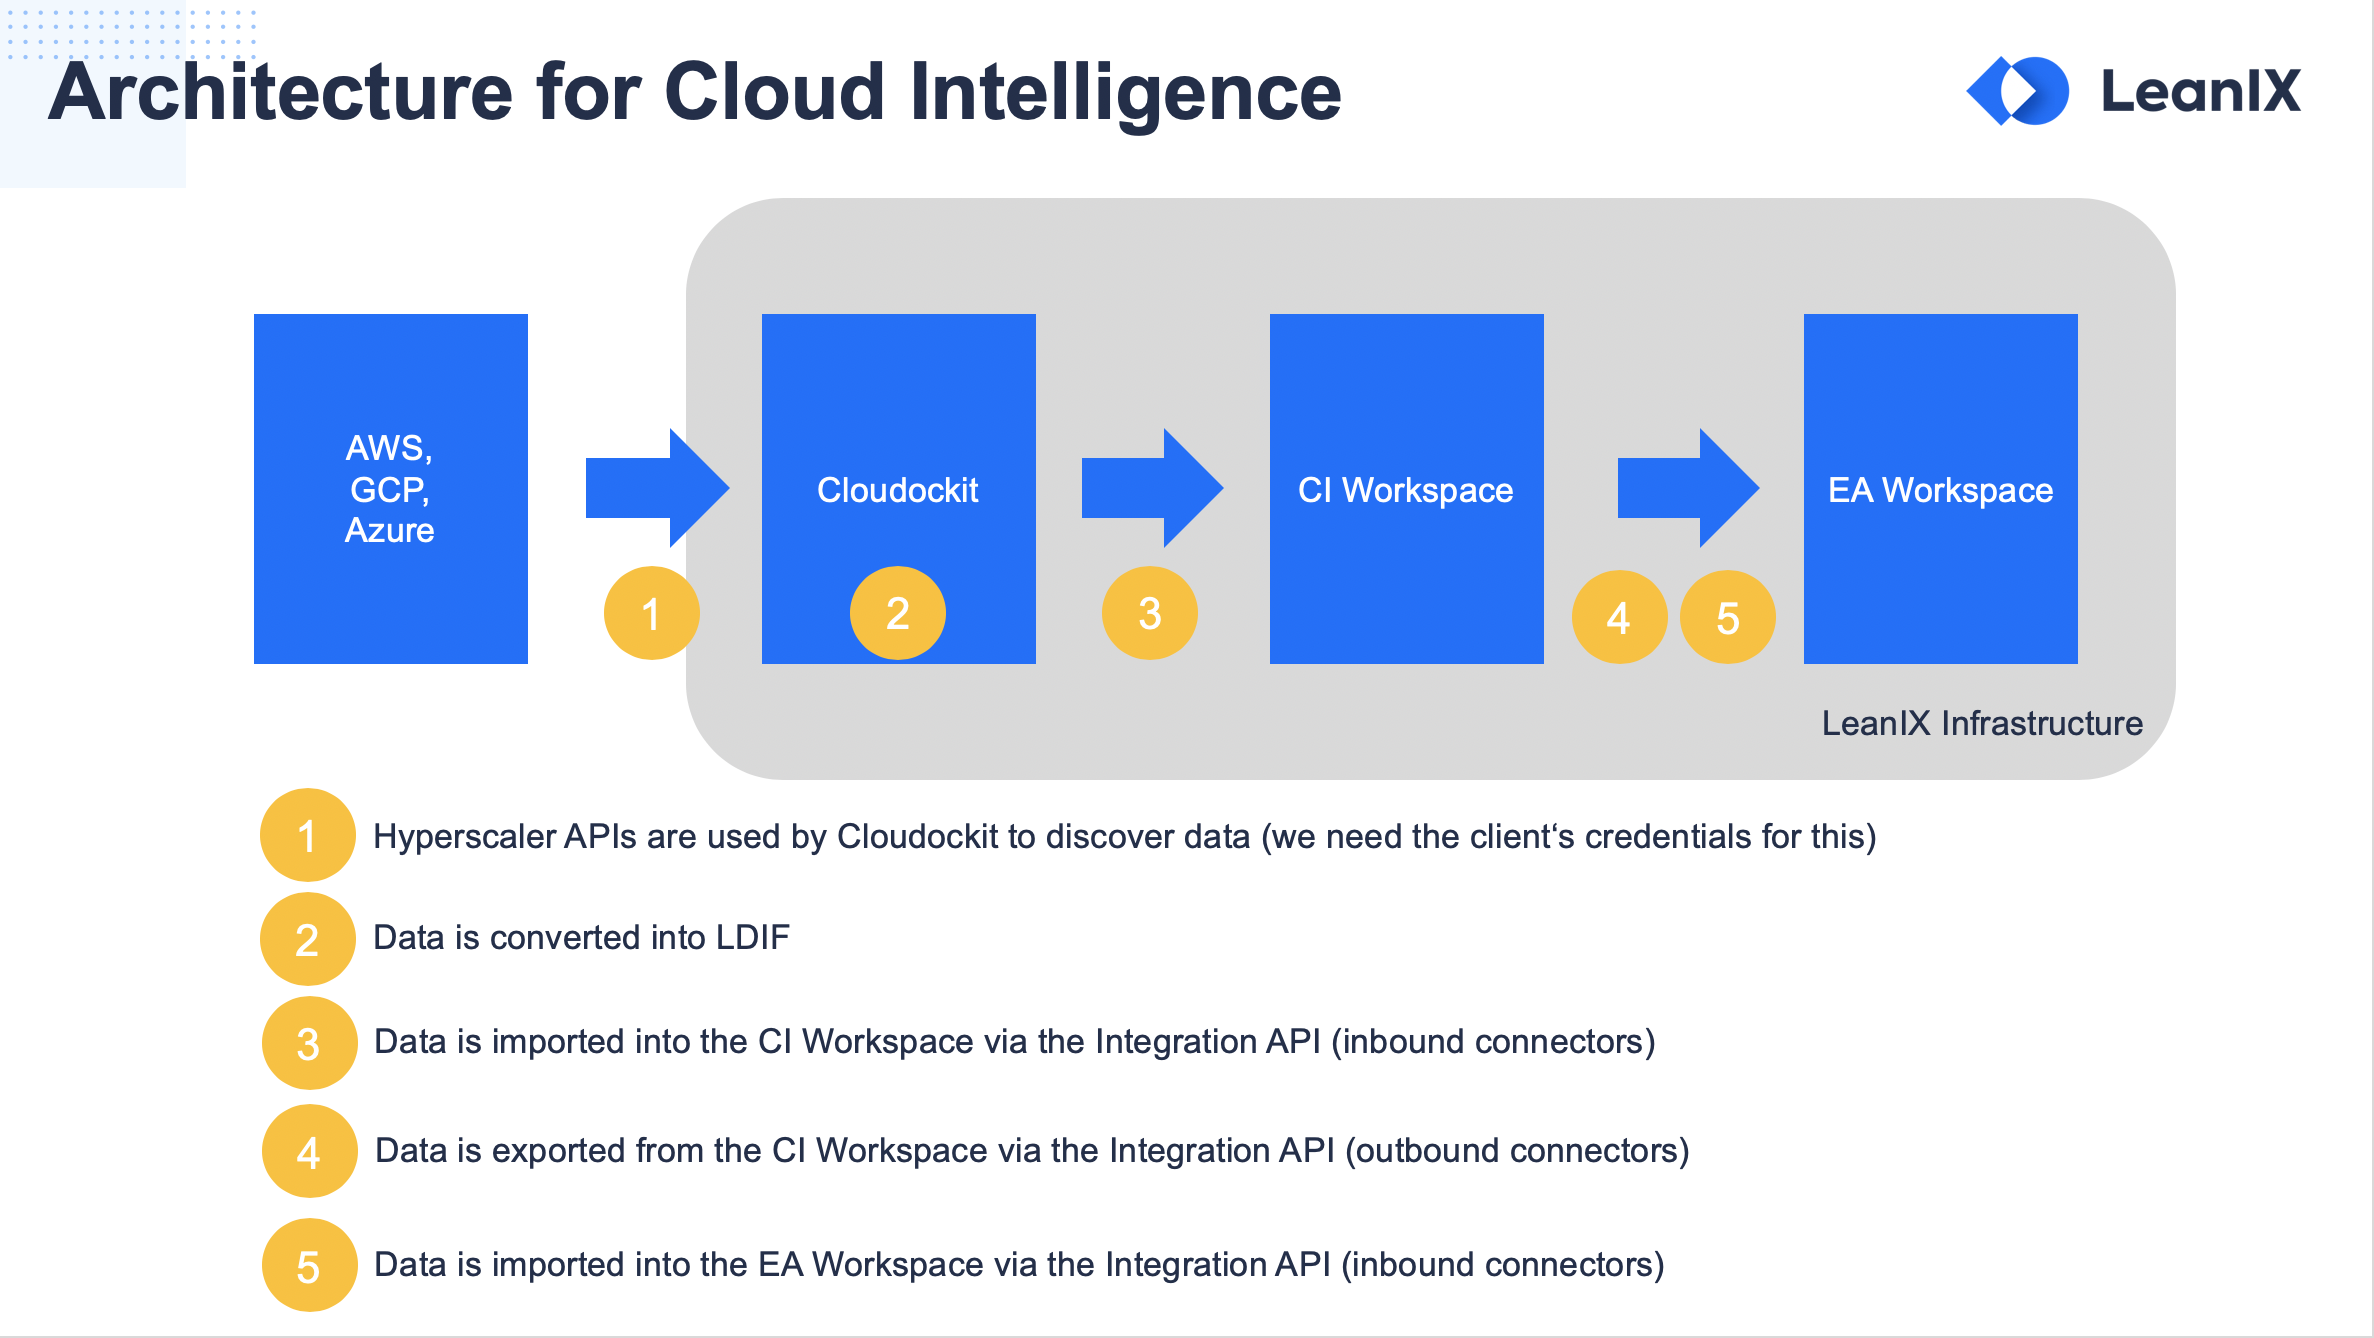 Architecture for Cloud Intelligence